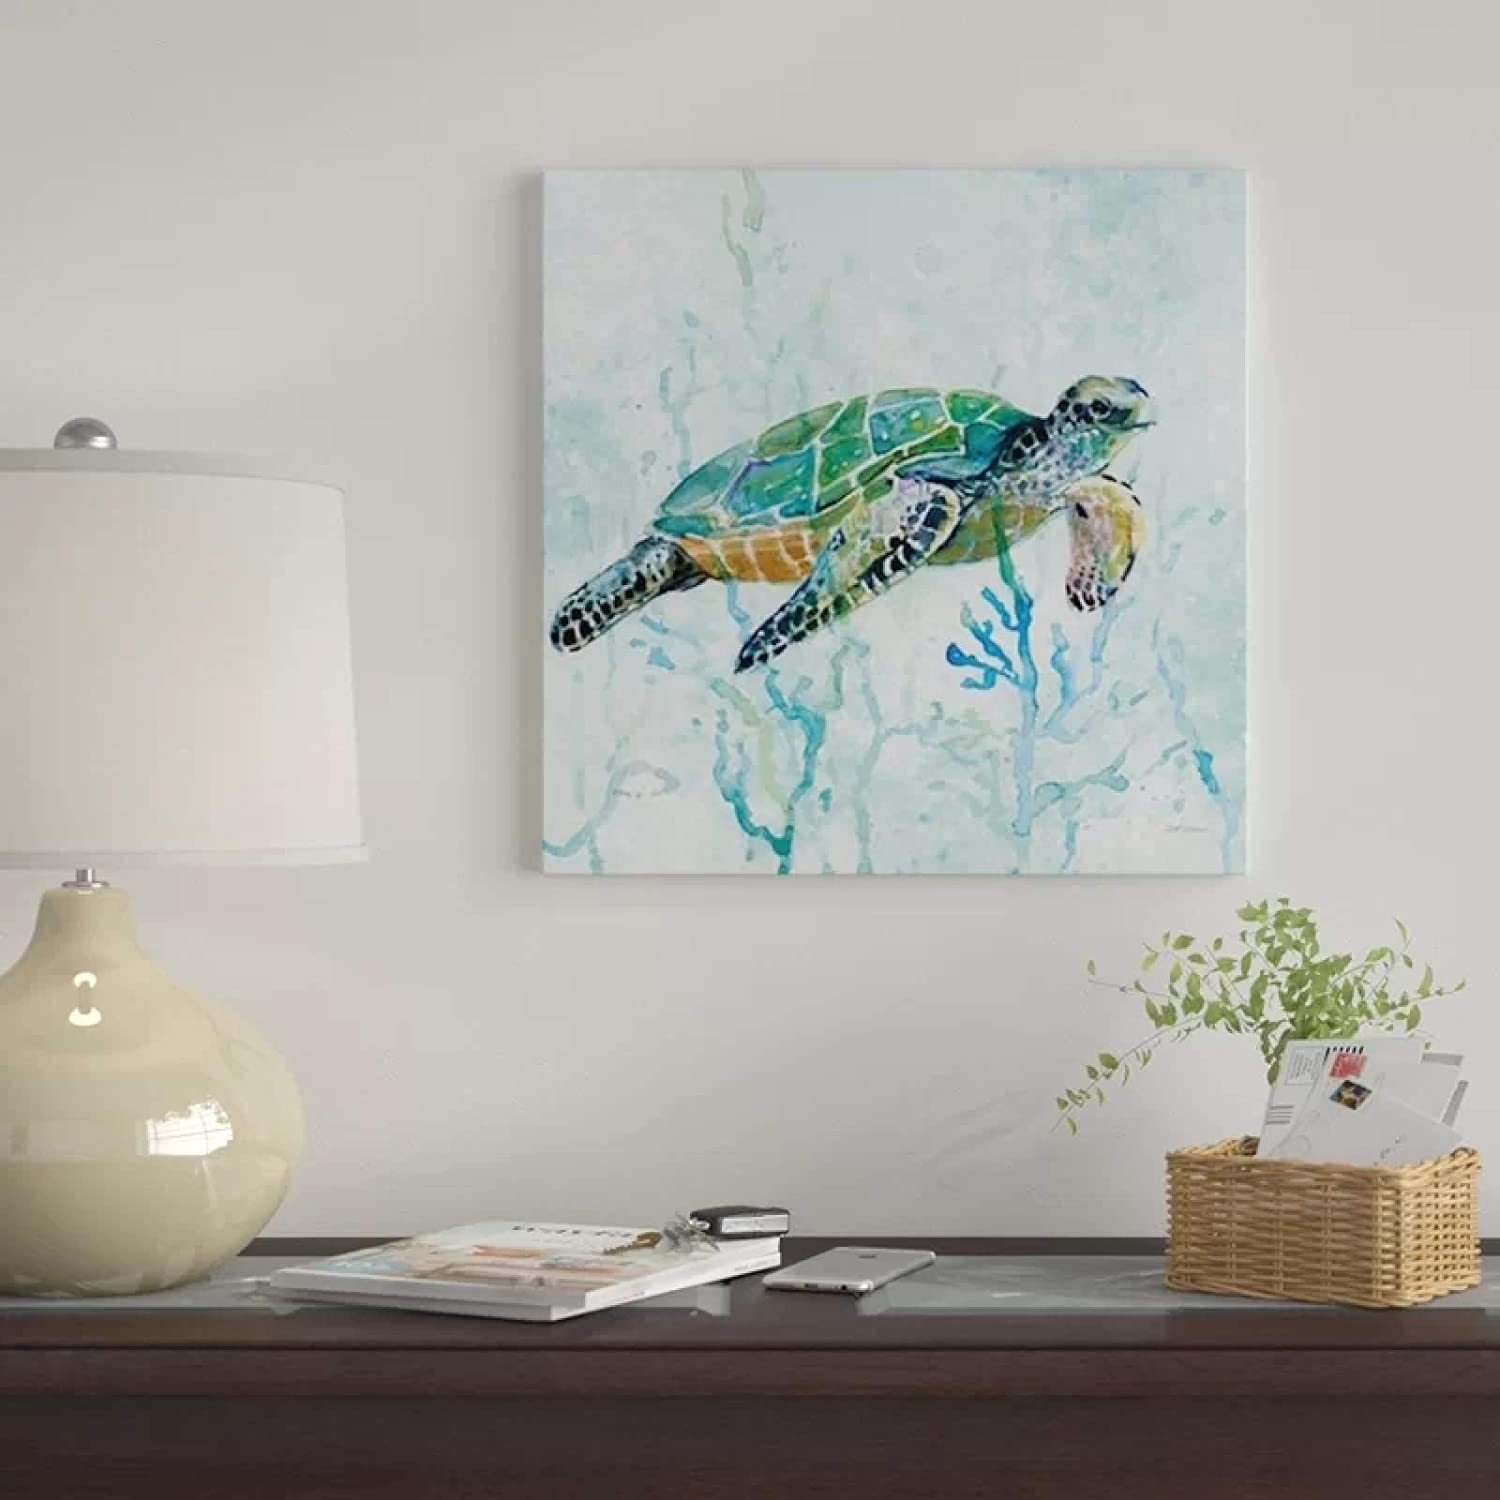 Canvas Poster Modular Animal Tortoise Prints Underwater Paintings Wall Art Pictures Gift Living Room Home Decor-70x70cm No Frame